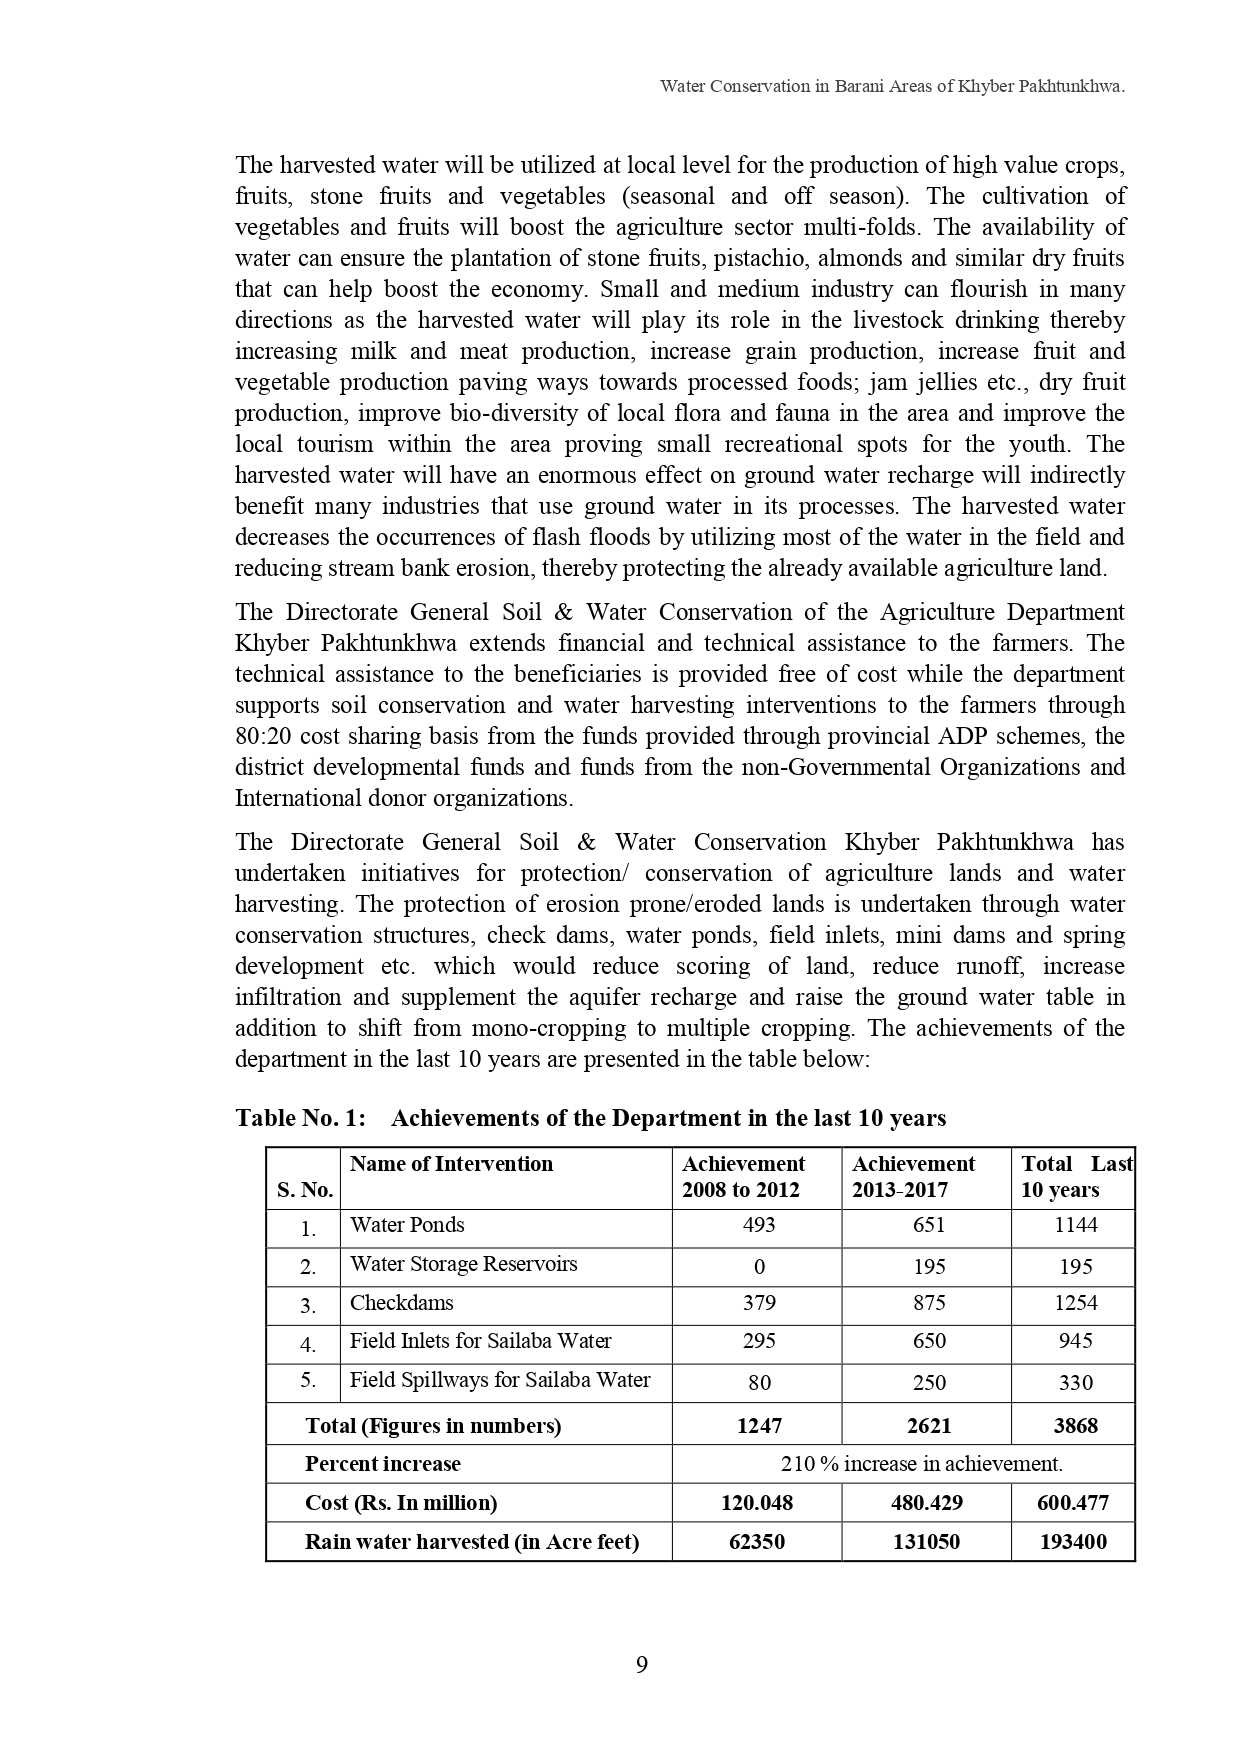 FINAL_PC-I_KP-SWC_Water_Conservation_in_Brani_Areas_of_Khyber_Pakhtunkhwa_May_2nd__2019_(WITHOUT_ANNEXURES)_page-0010